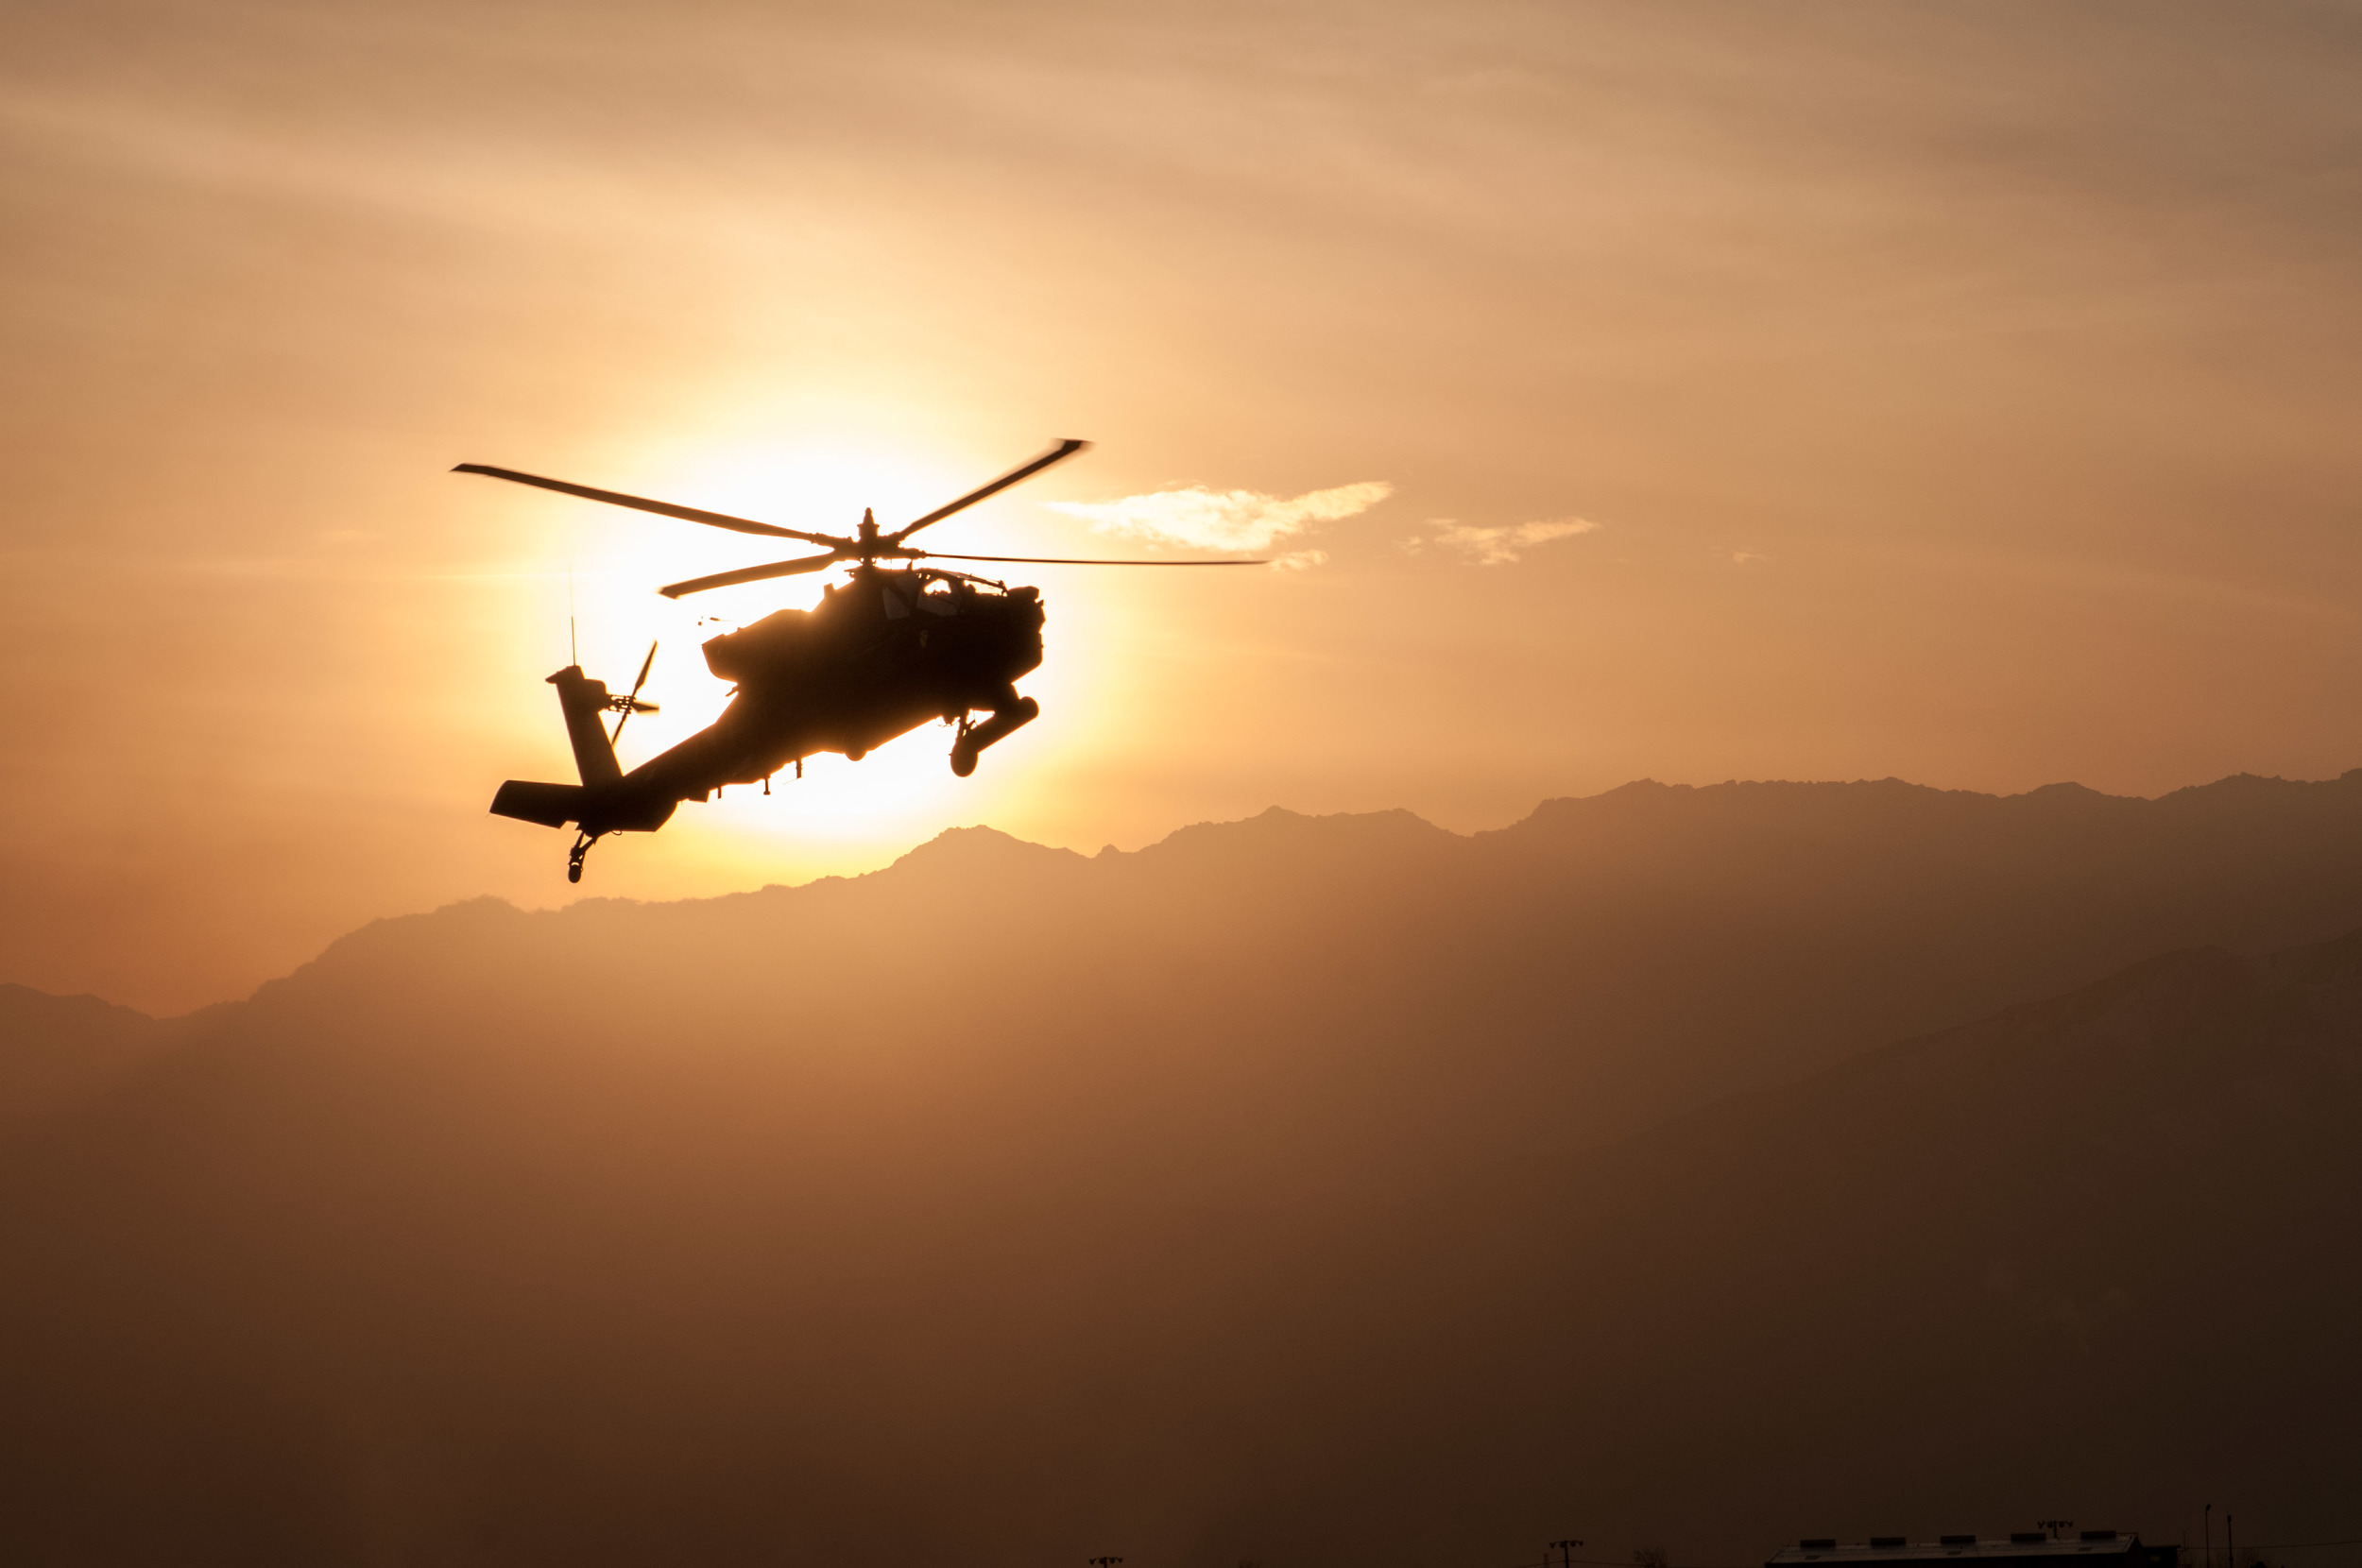 Beautiful capture of an Apache helicopter right as the sun was attempting to hide behind the mountains.